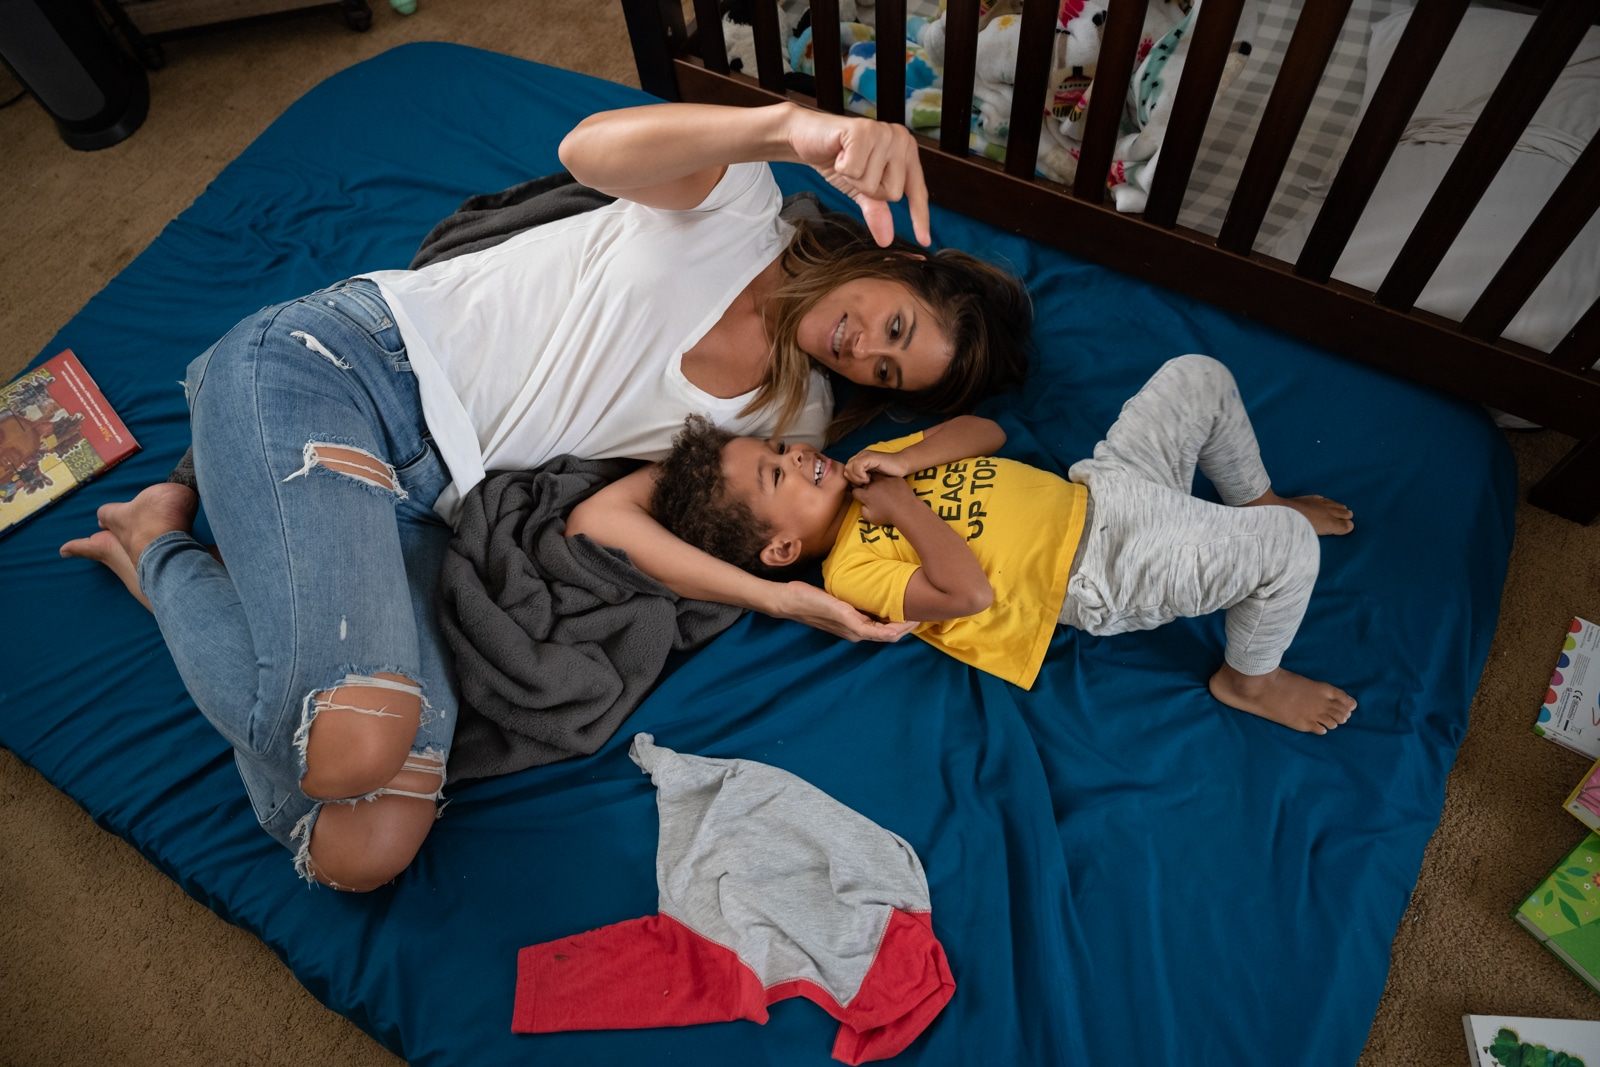 mom plays with her son on his bedroom floor